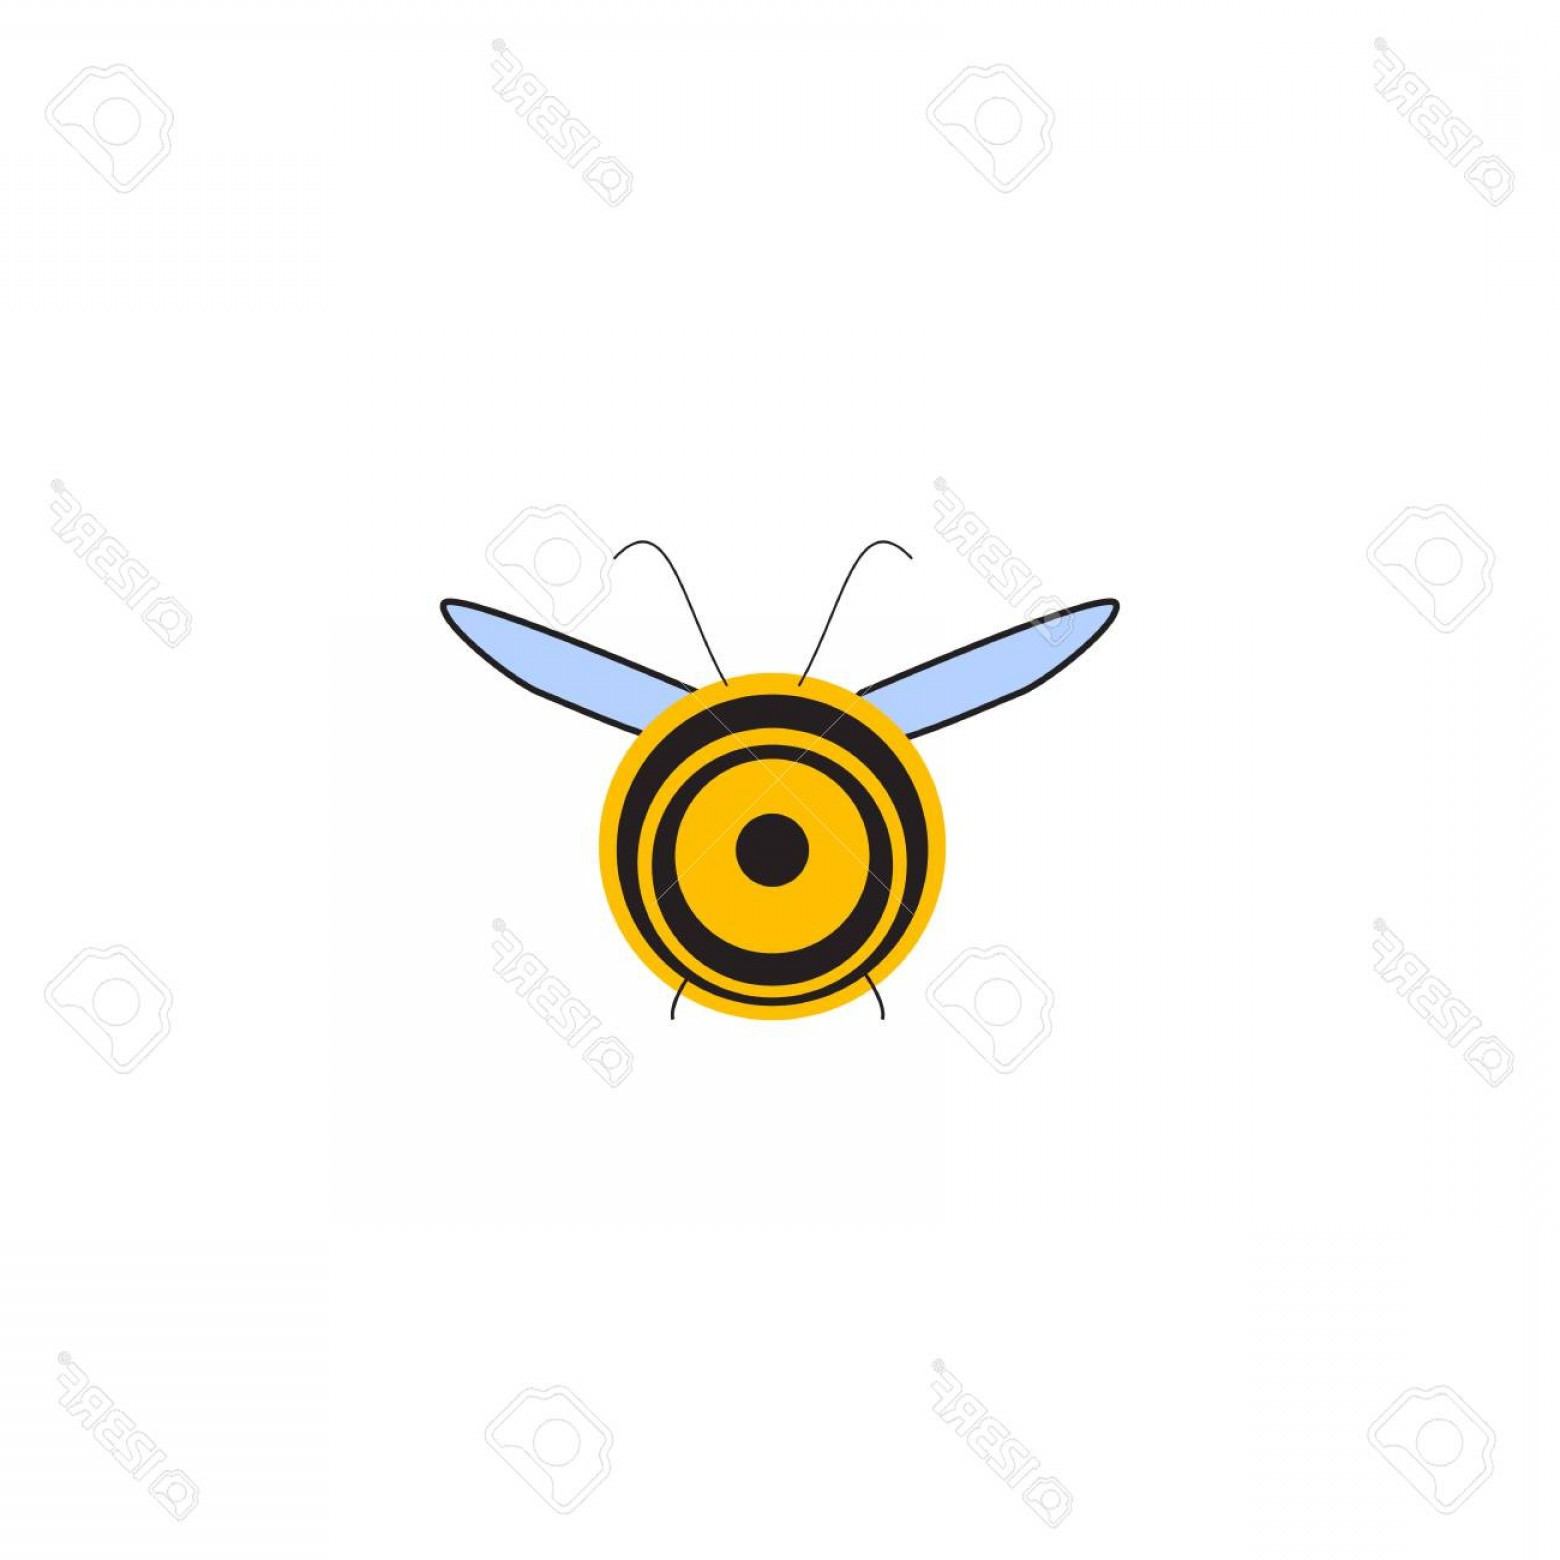 Bee Stinger Back Vector Art: Photostock Vector Busy Bee Abstract Flying Honey Bee Back View Vector Illustration